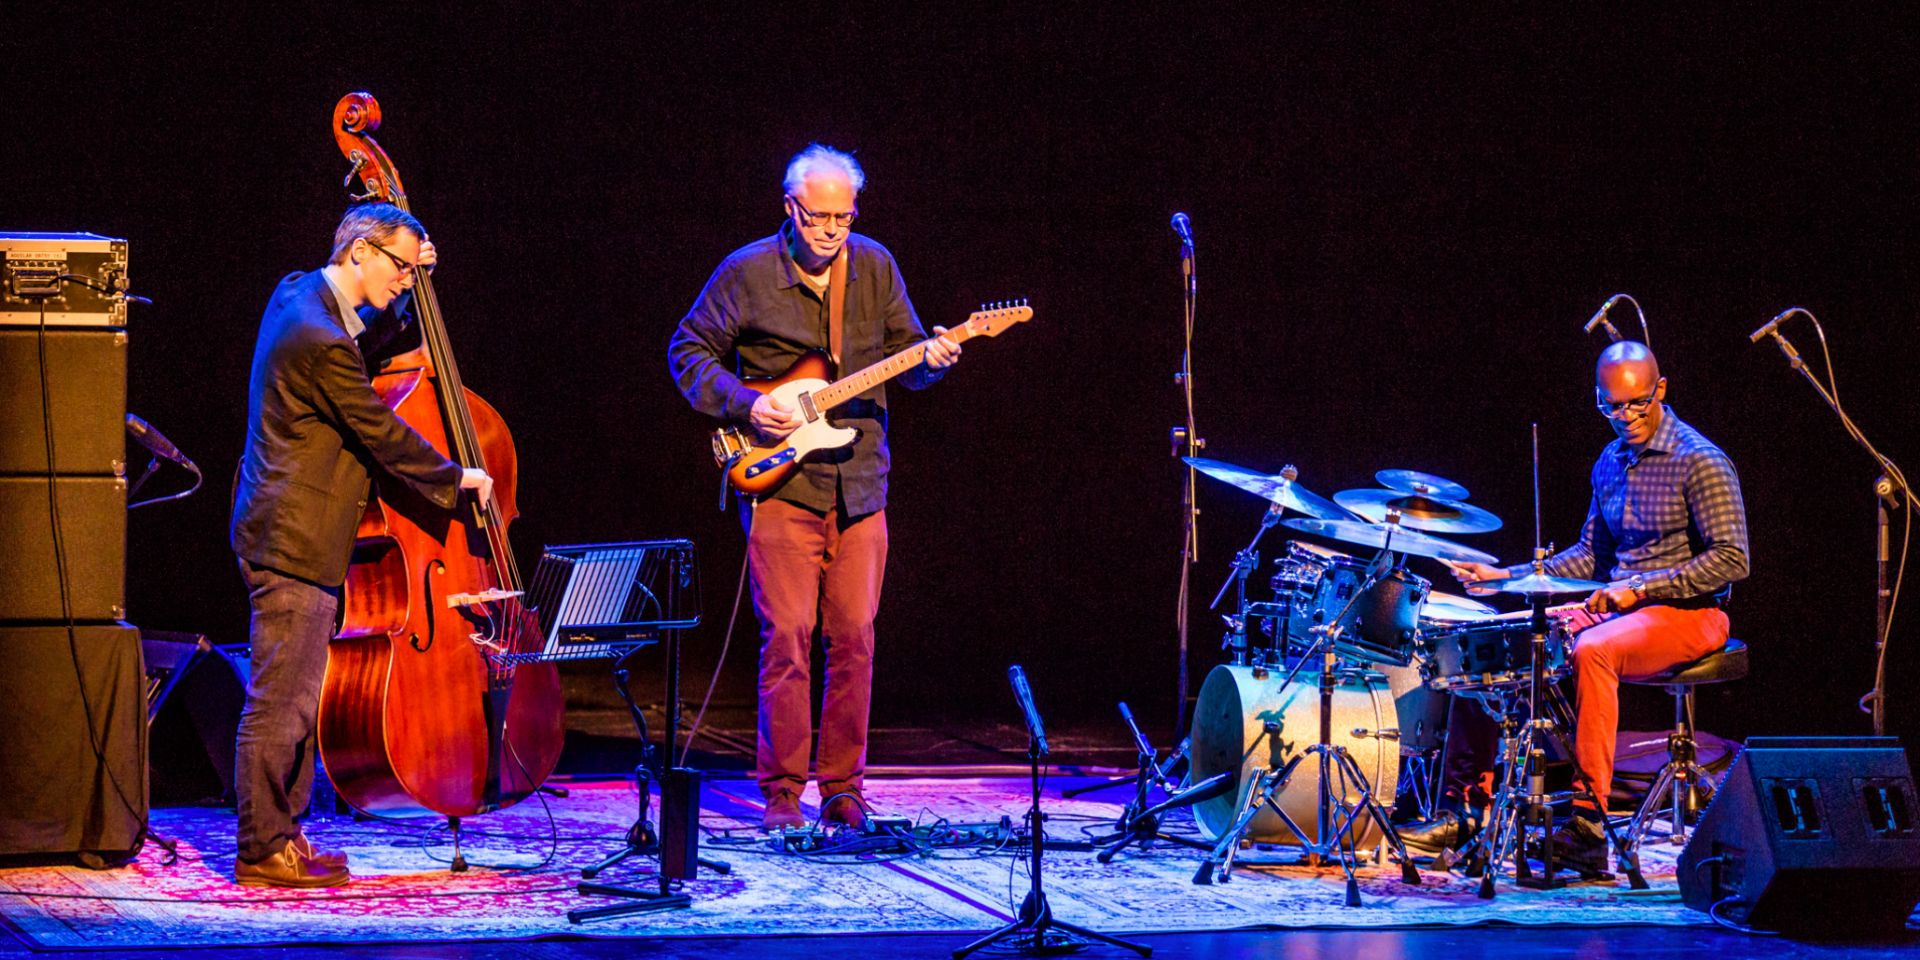 The Bill Frisell Trio puts on a riveting, spectacular show at debut Singapore performance for SIFA 2019 – gig report